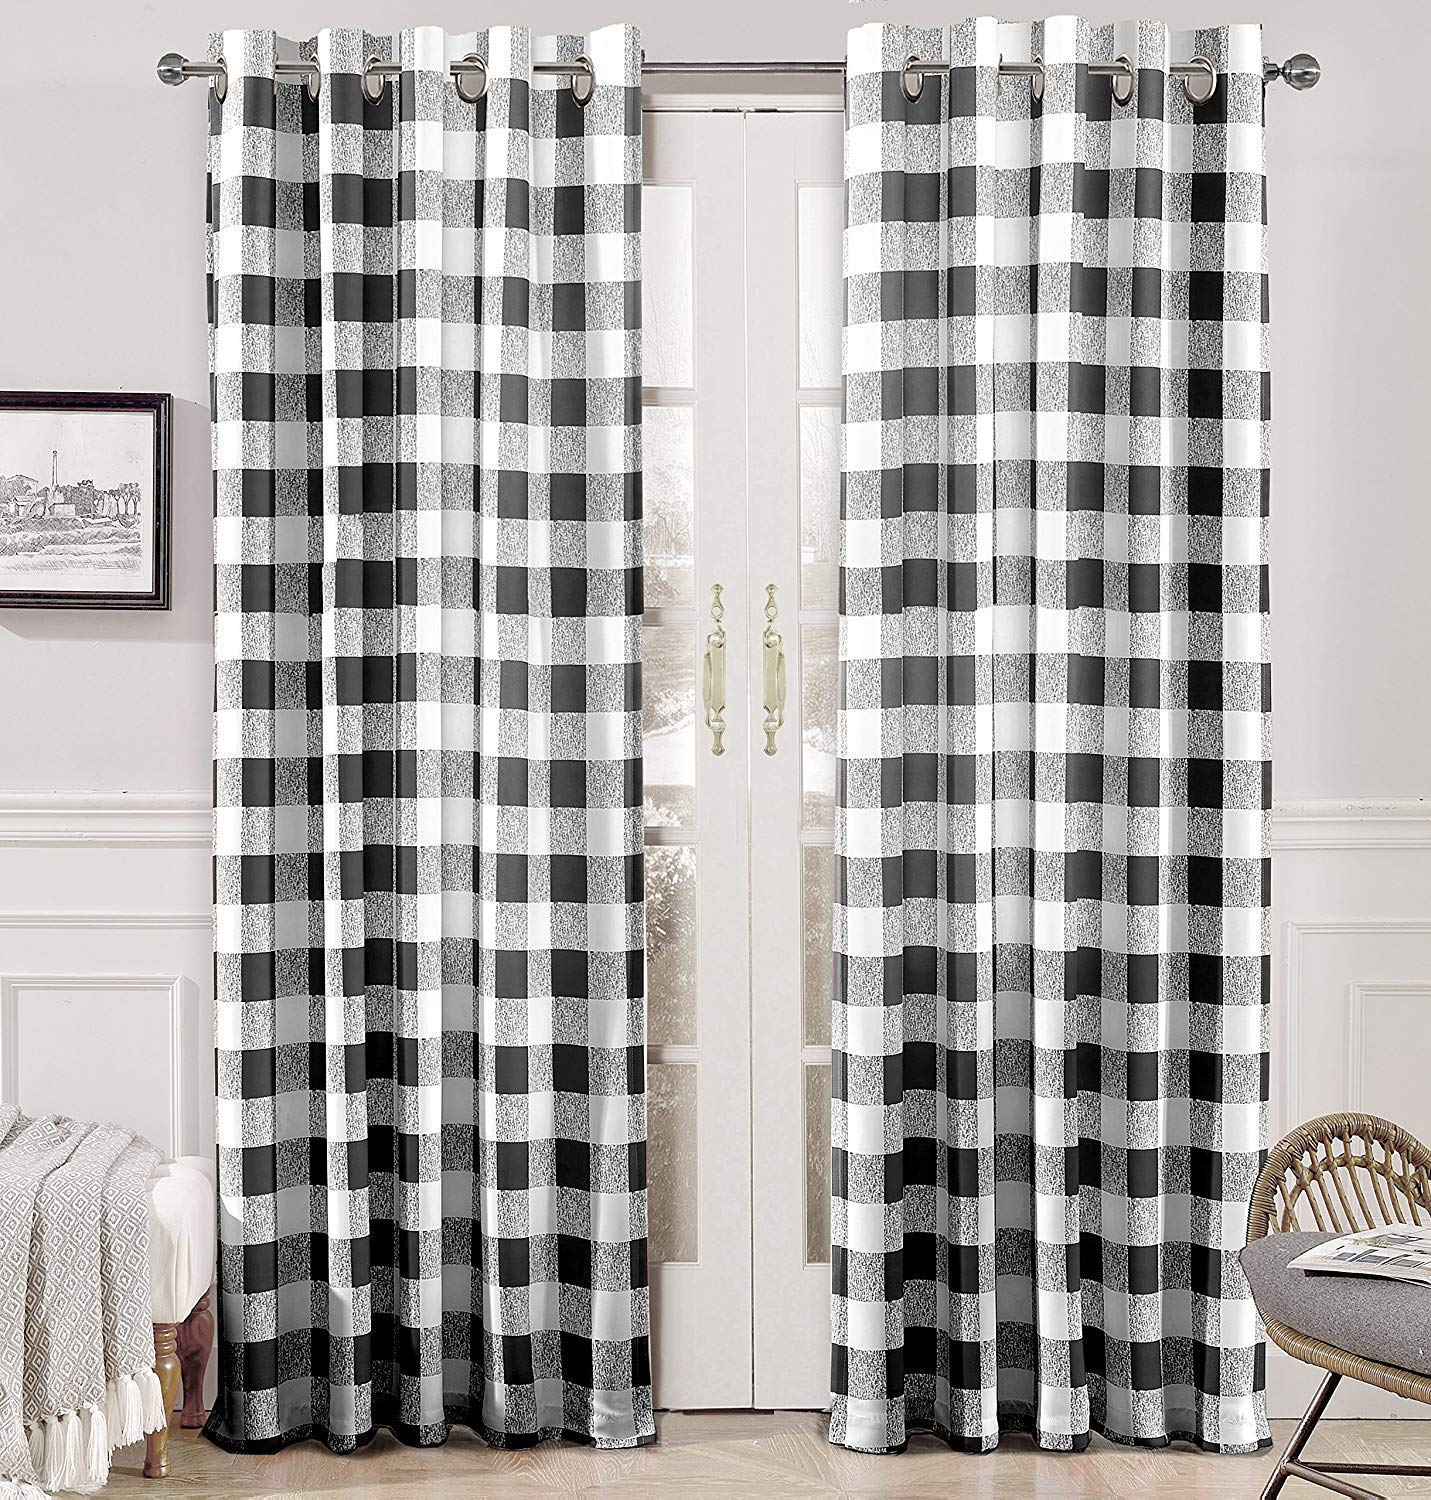 DriftAway Buffalo Checker Pattern Lined Thermal Insulated Blackout Room Darkening Grommet Window Curtains Printed Plaid 2 Layer Set of 2 Panels 52 Inch by 84 Inch Black by DriftAway